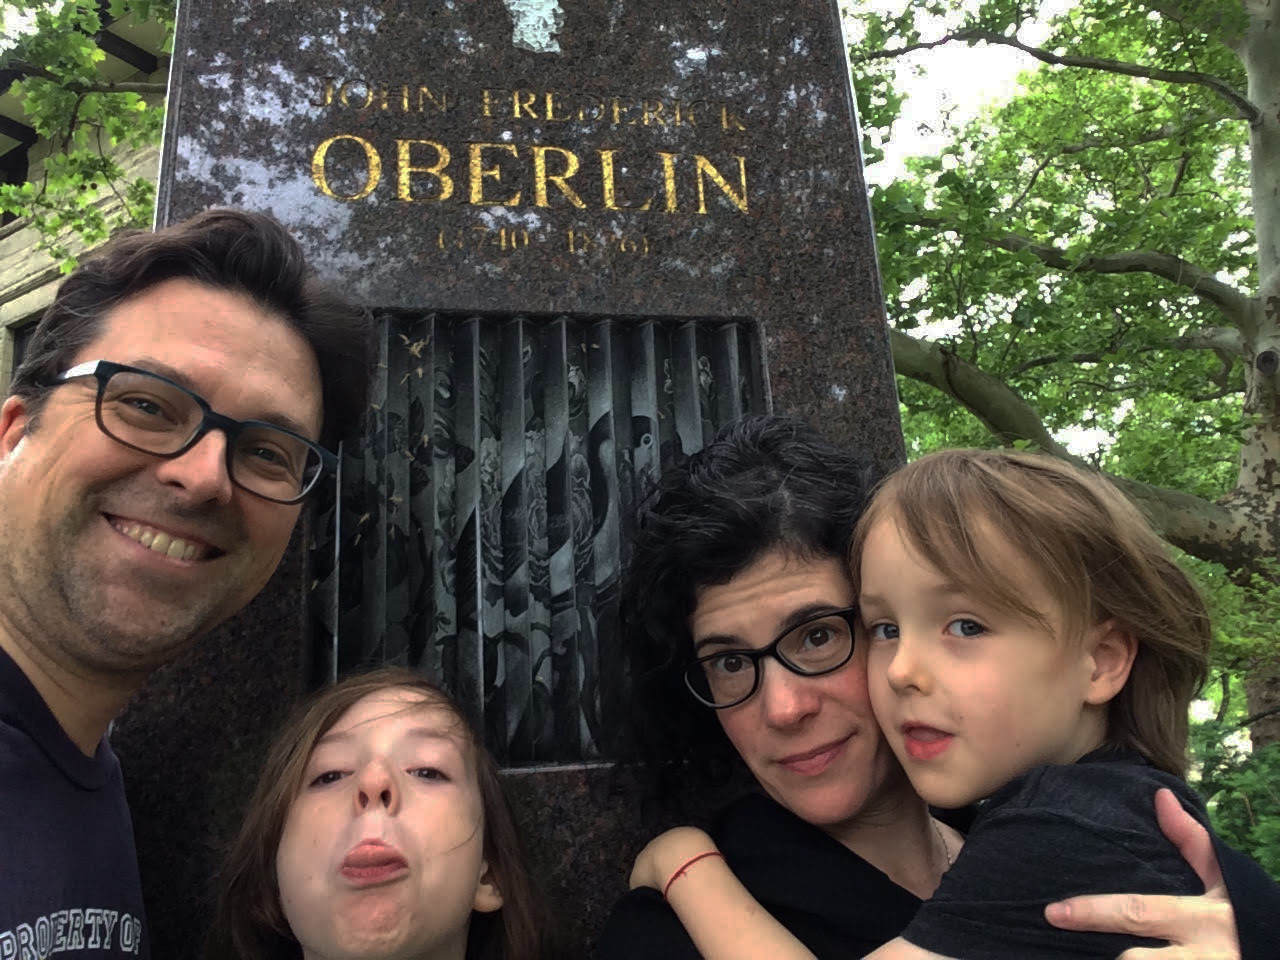 Professors Emily Barton and Tom Hopkins, new staff in the Creative Writing department, are quite proficient in the art of the selfie and taking family portraits around Oberlin.